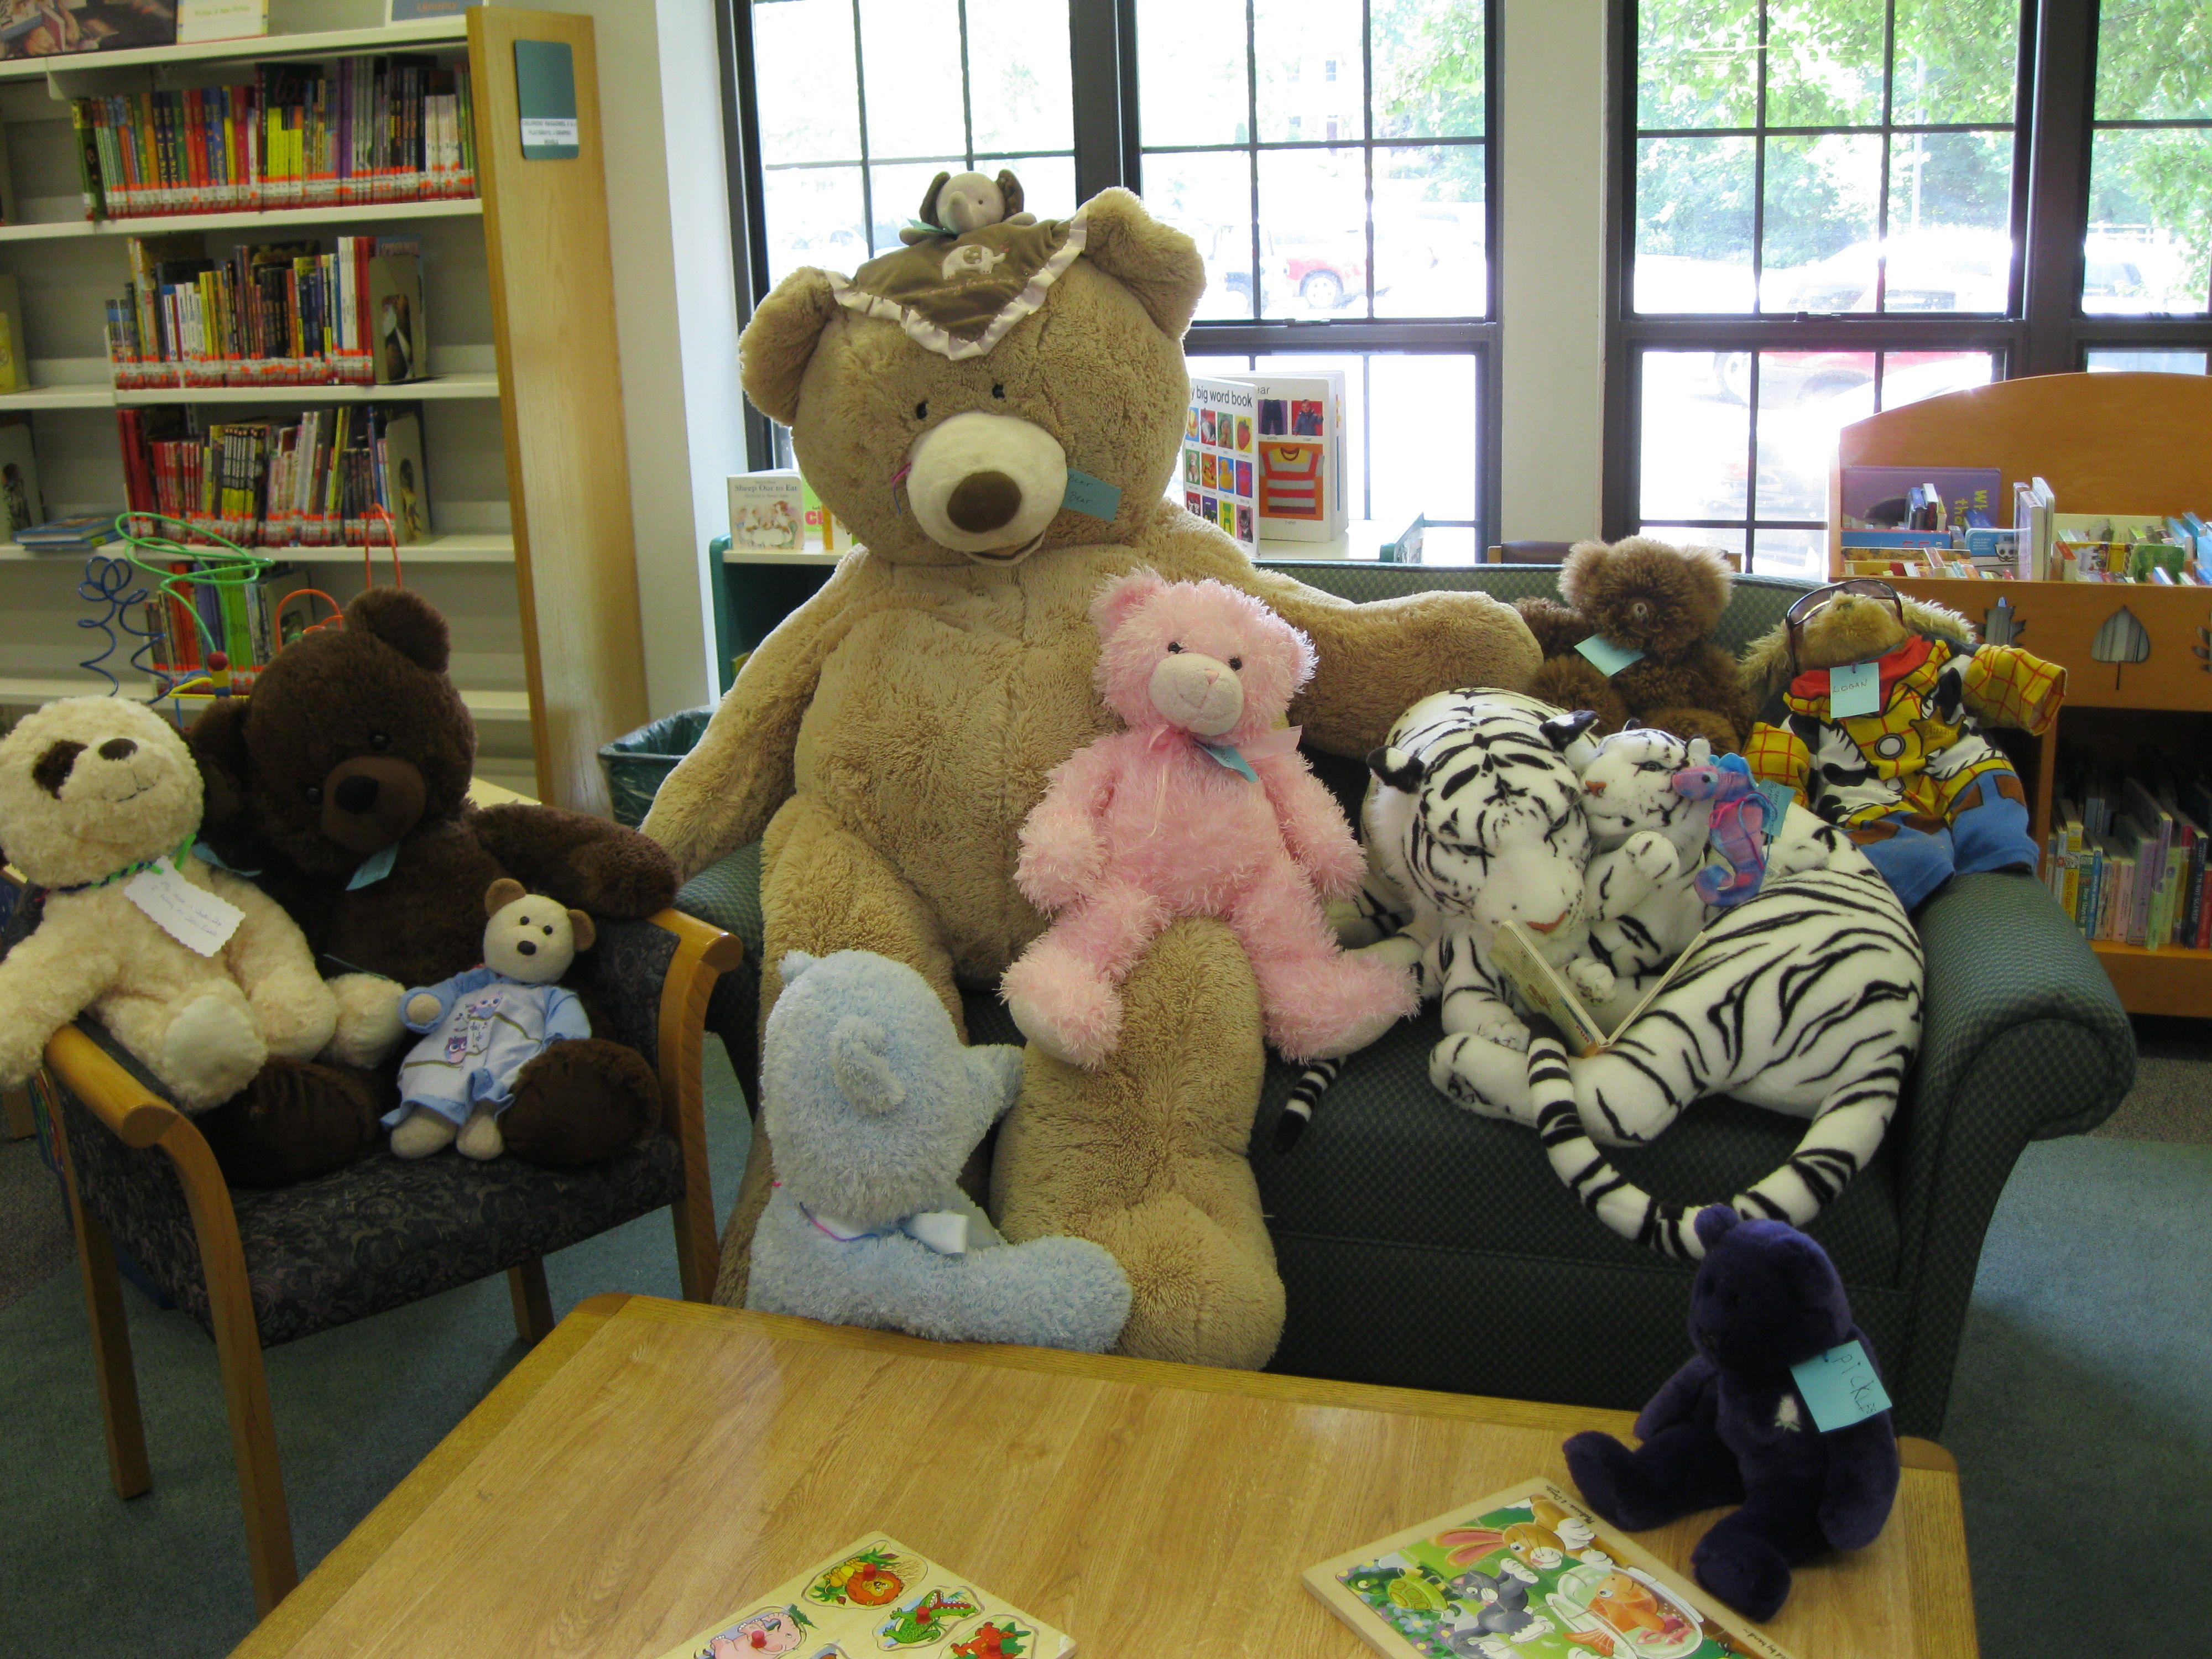 Teddy bears from some of our younger patrons had a sleepover in the Purcellville library.